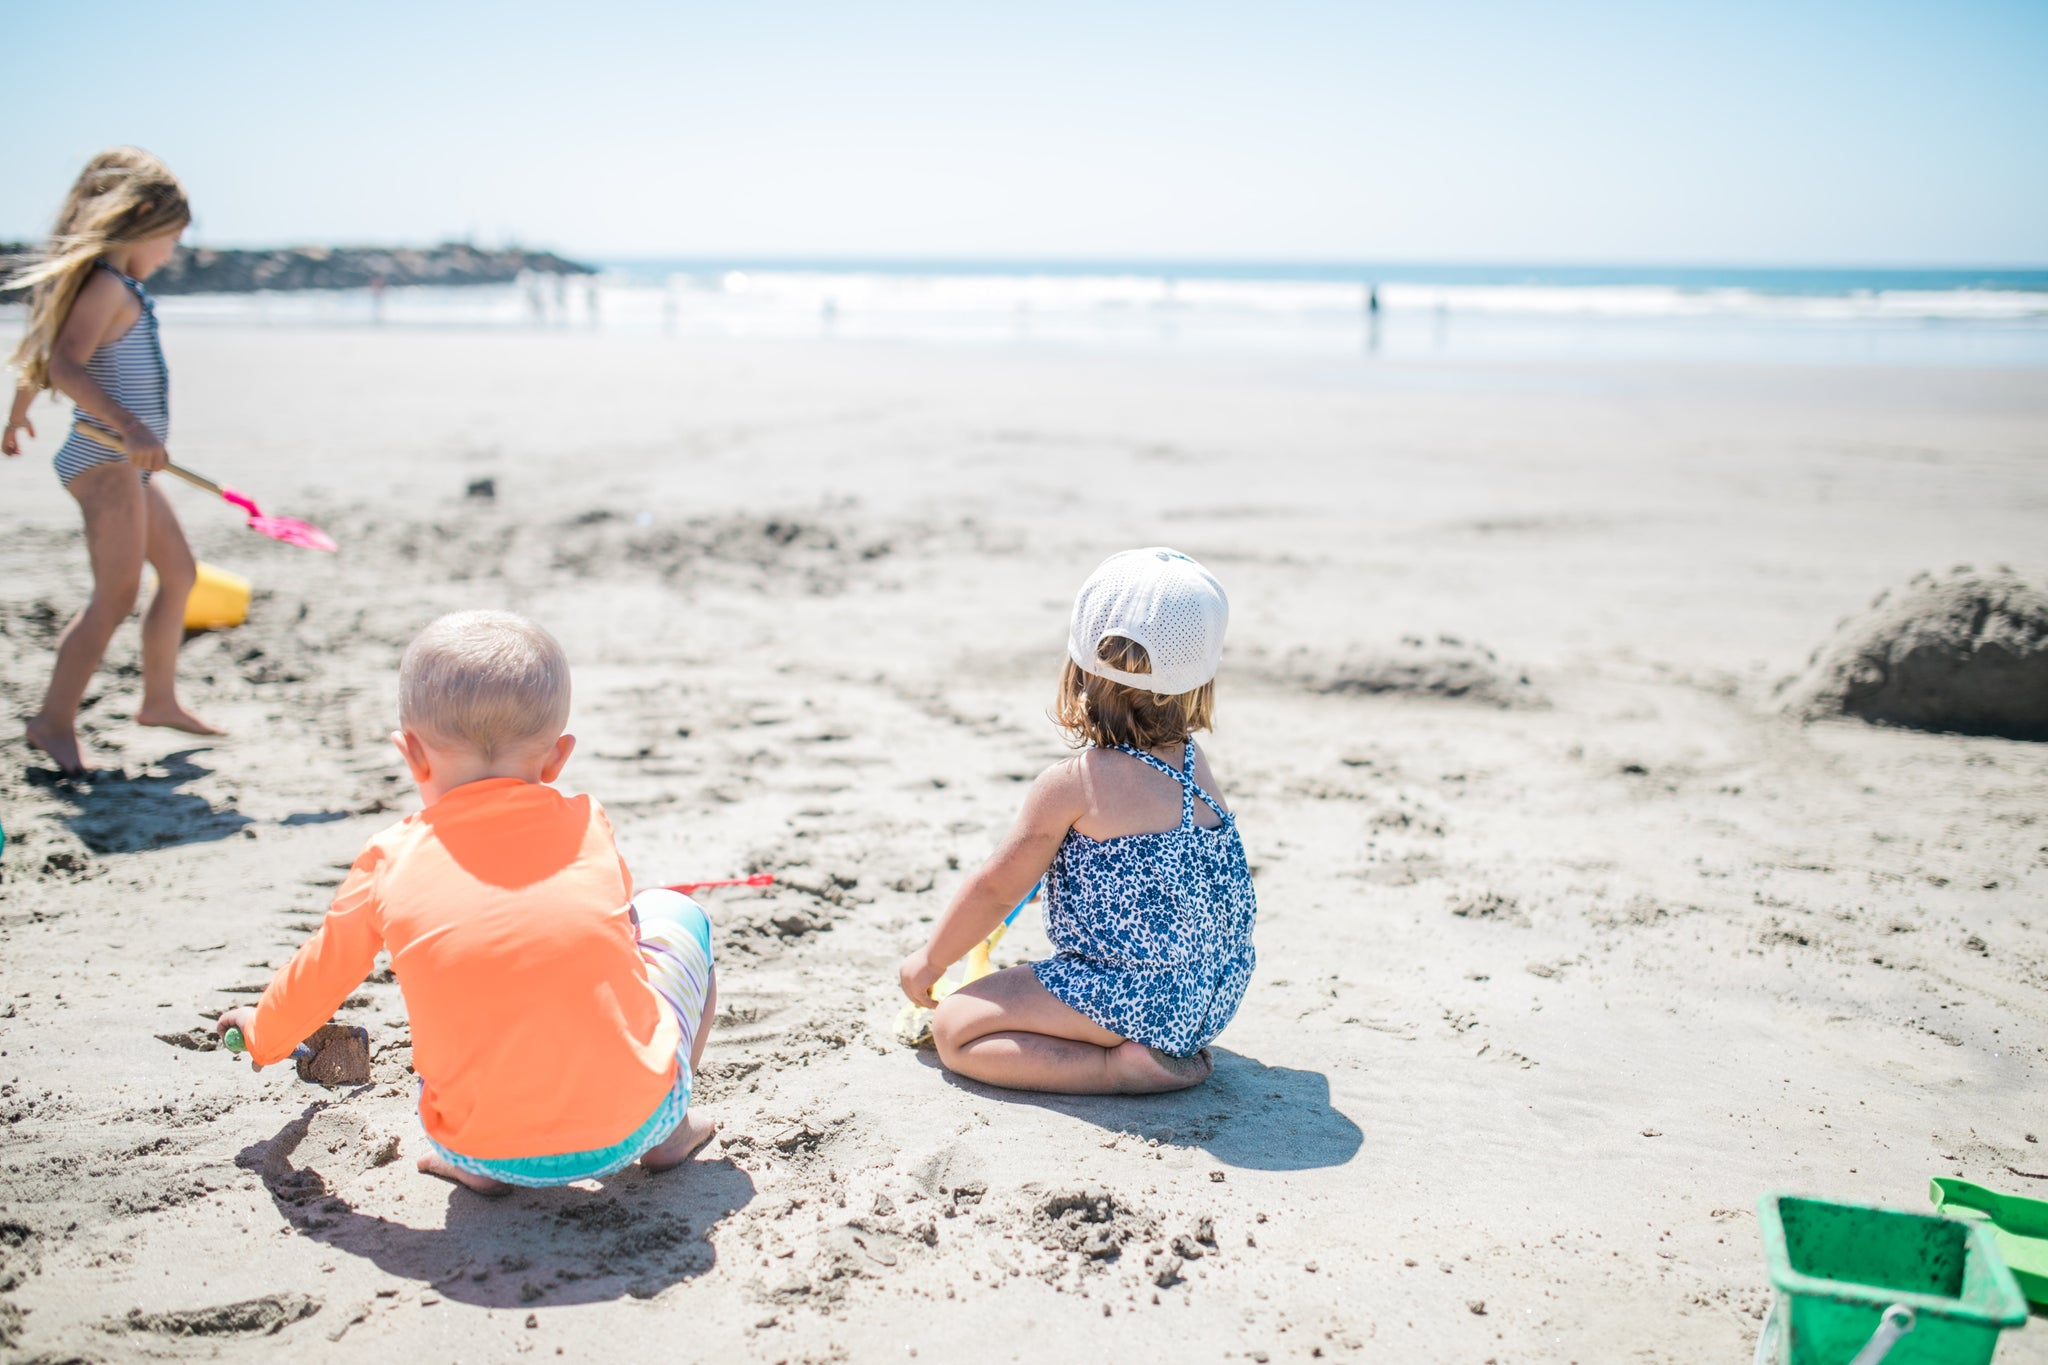 Is kids sunscreen safe for babies?